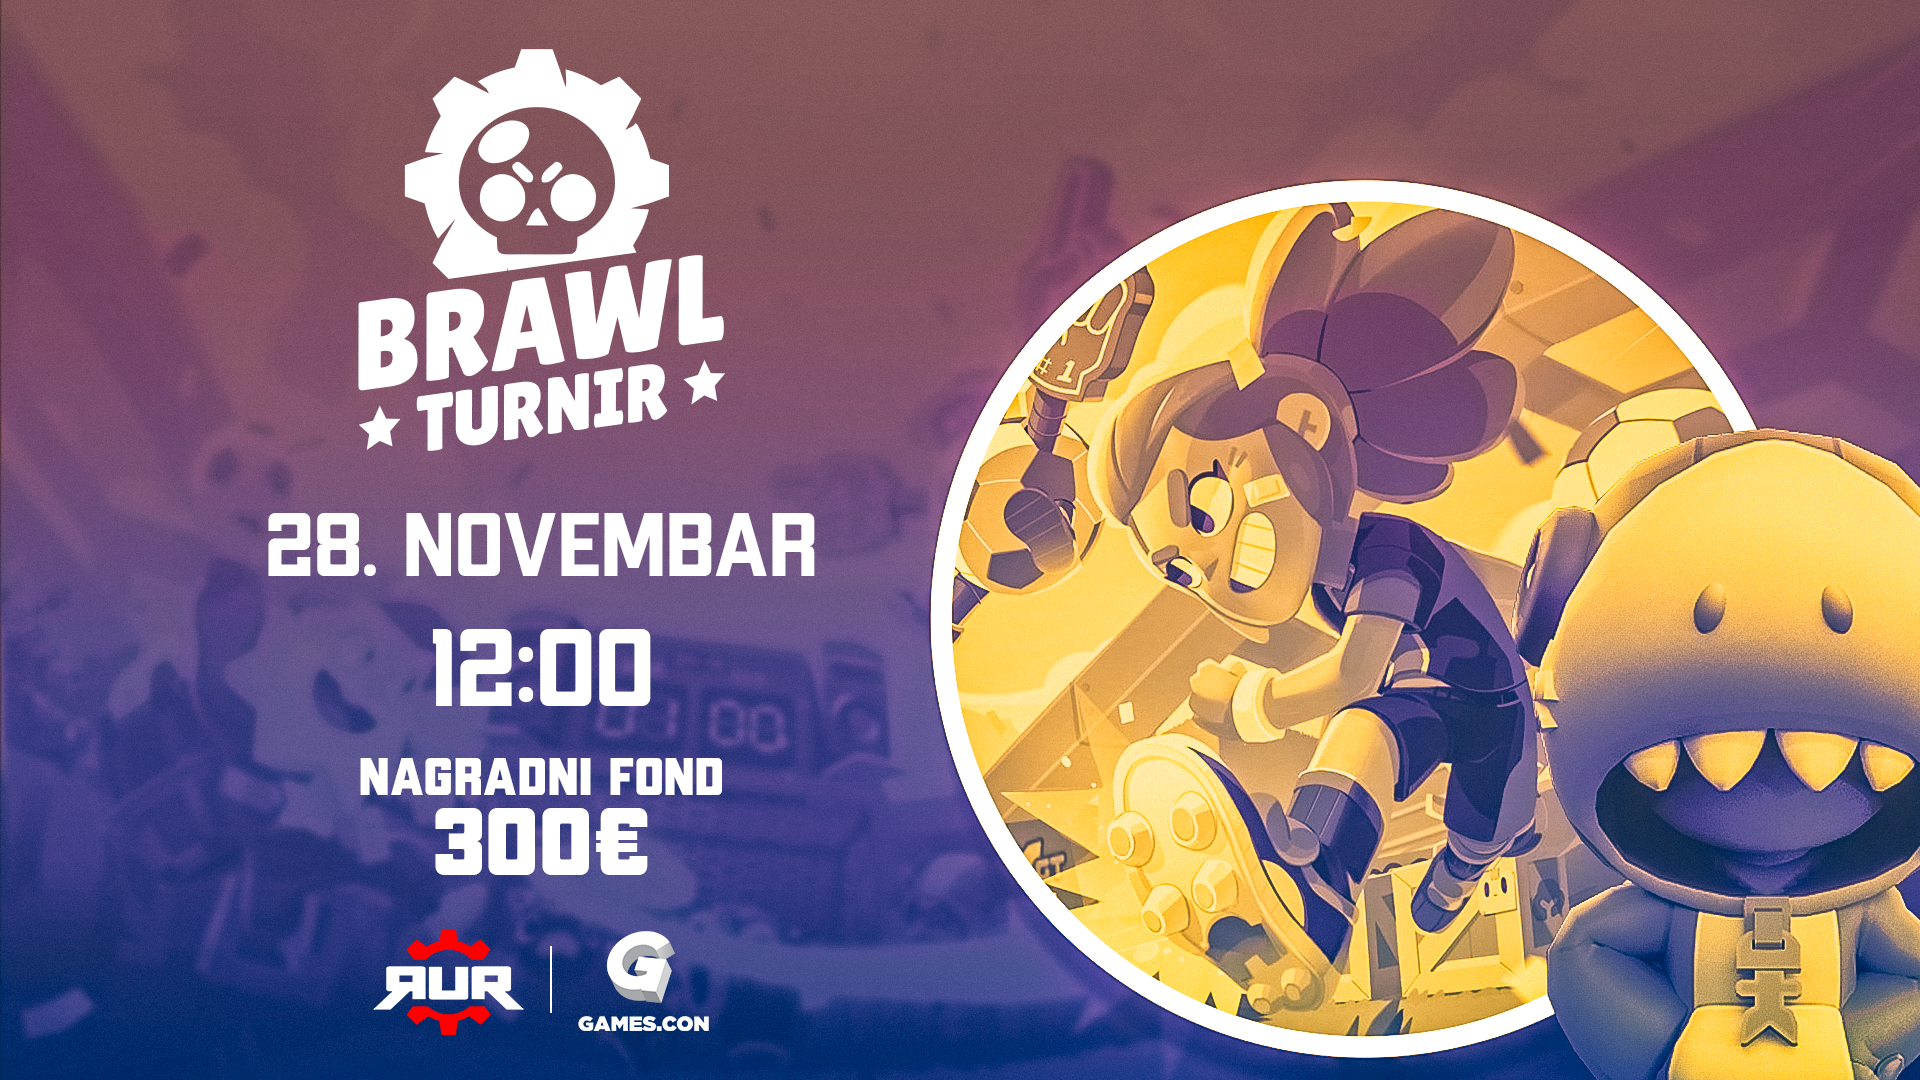 Brawl-turnir-gamescon